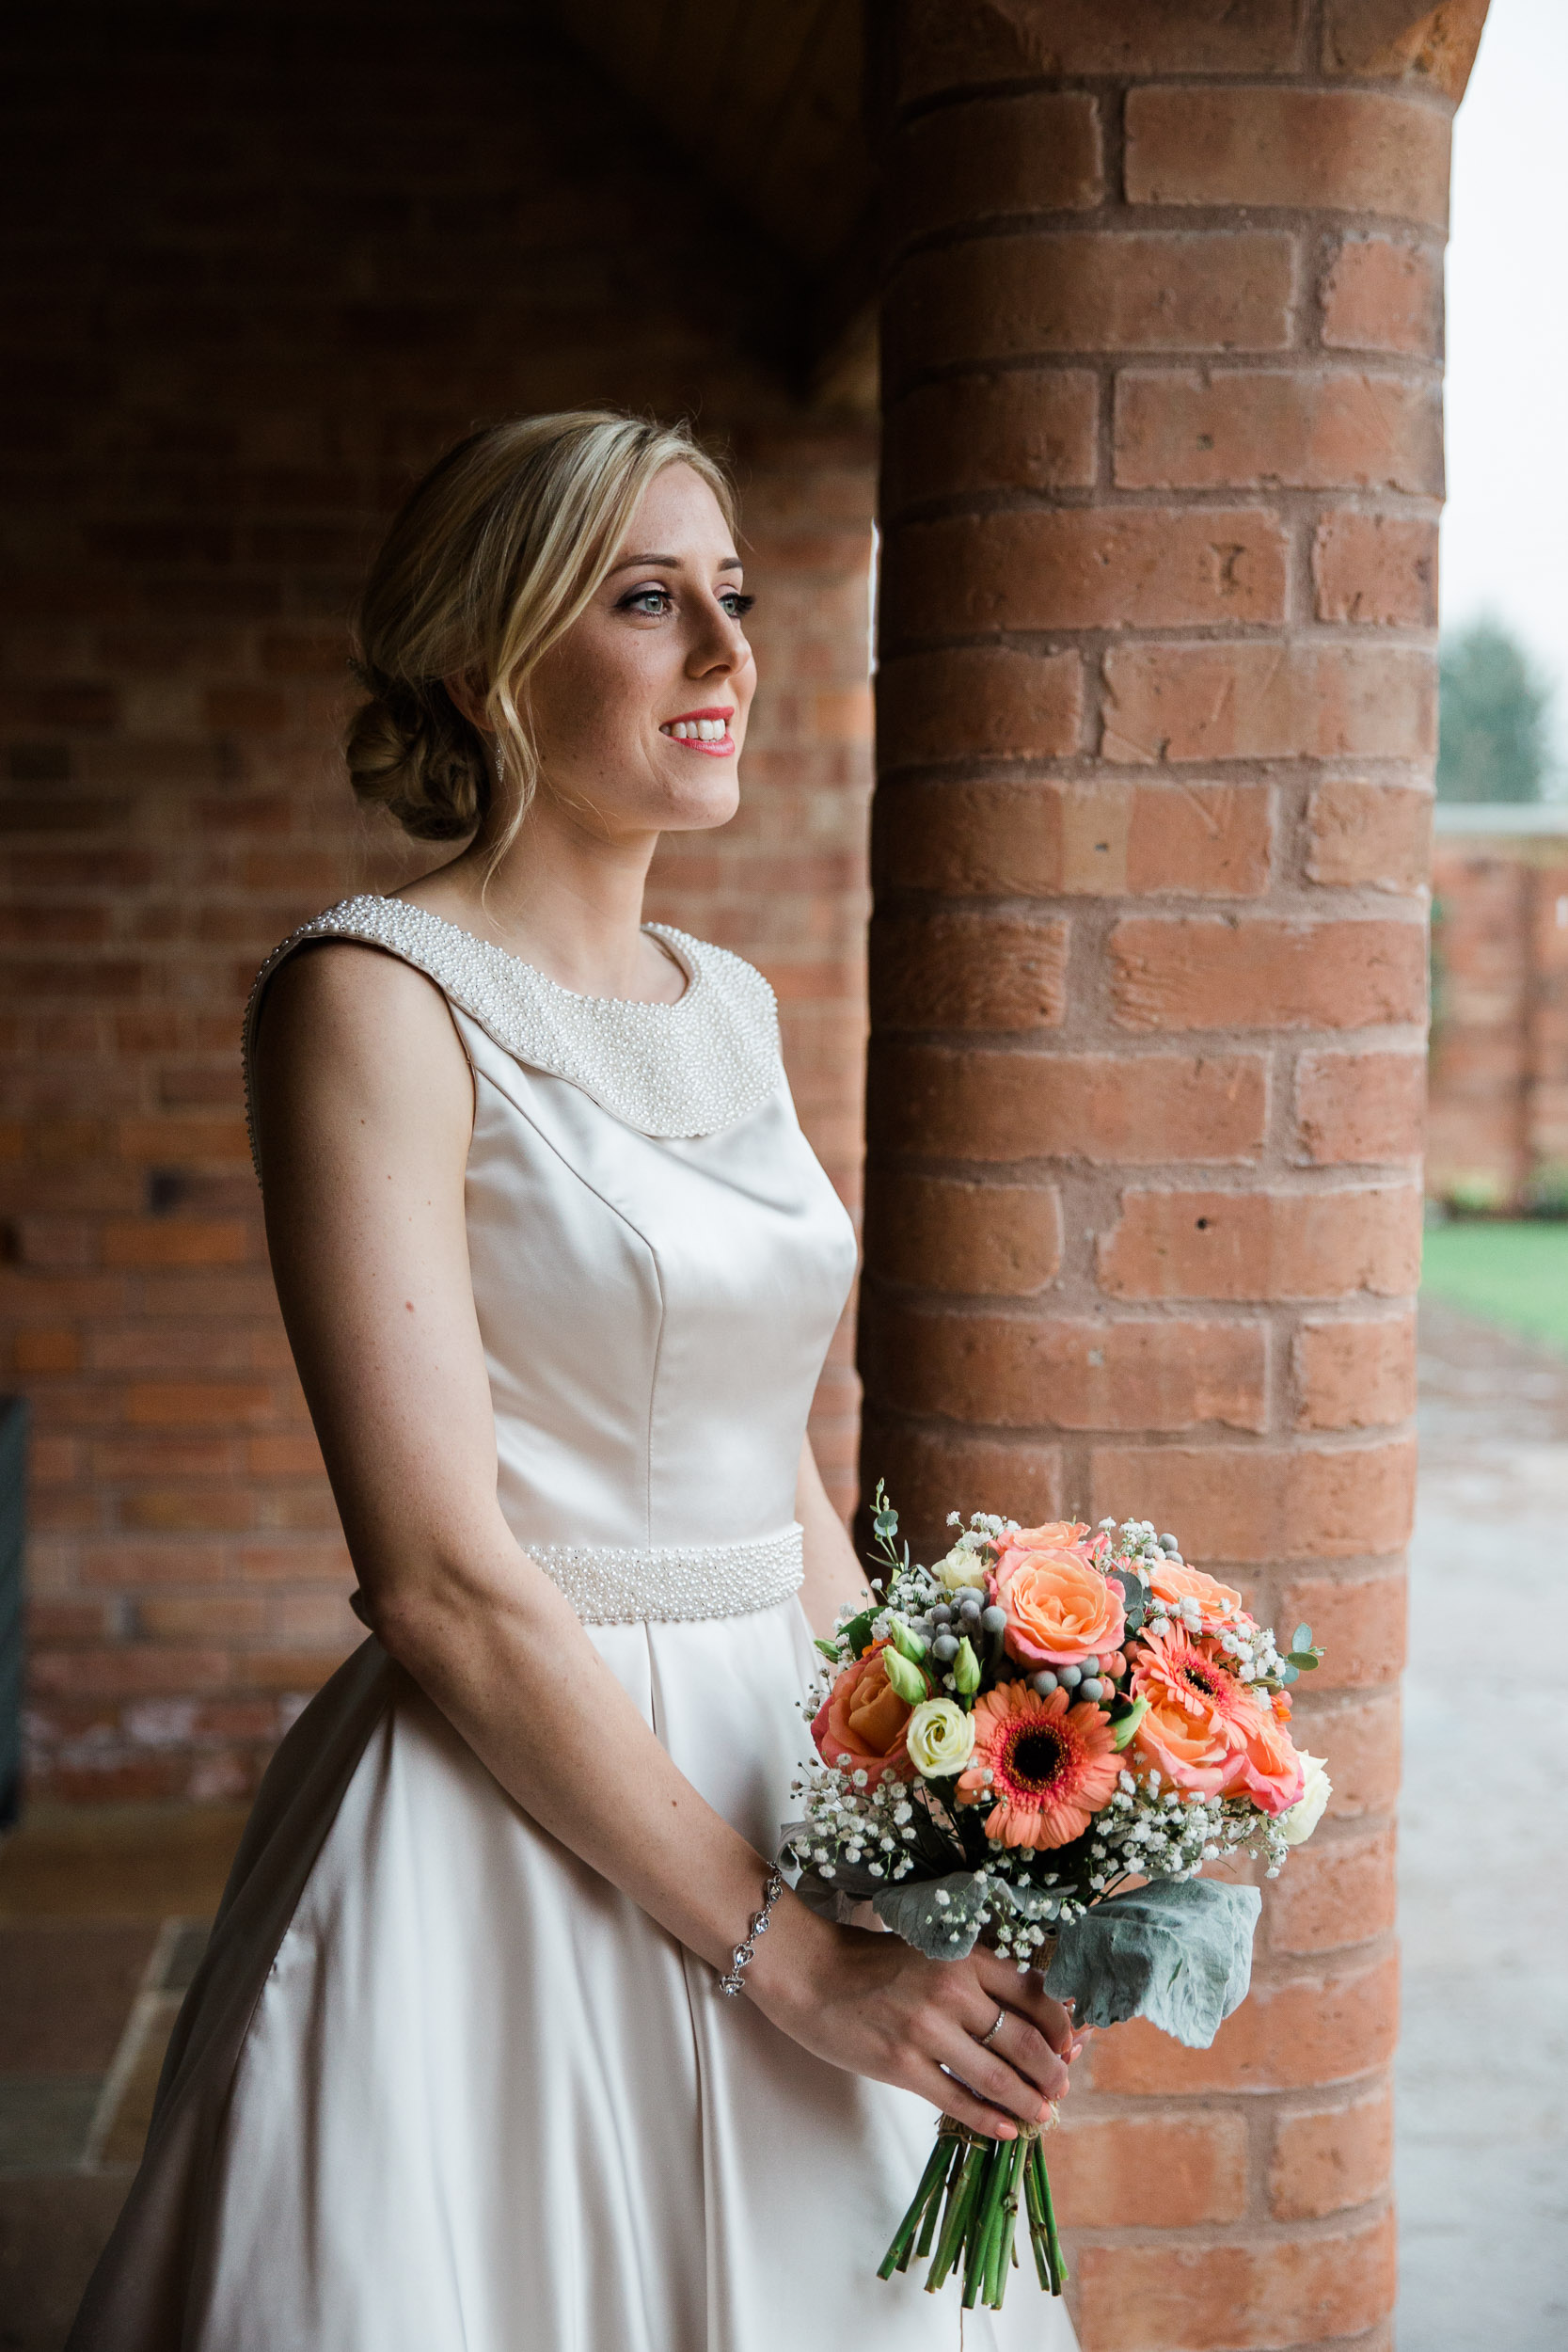 Swallows Nest Barn Chic & Rustic Wedding-95